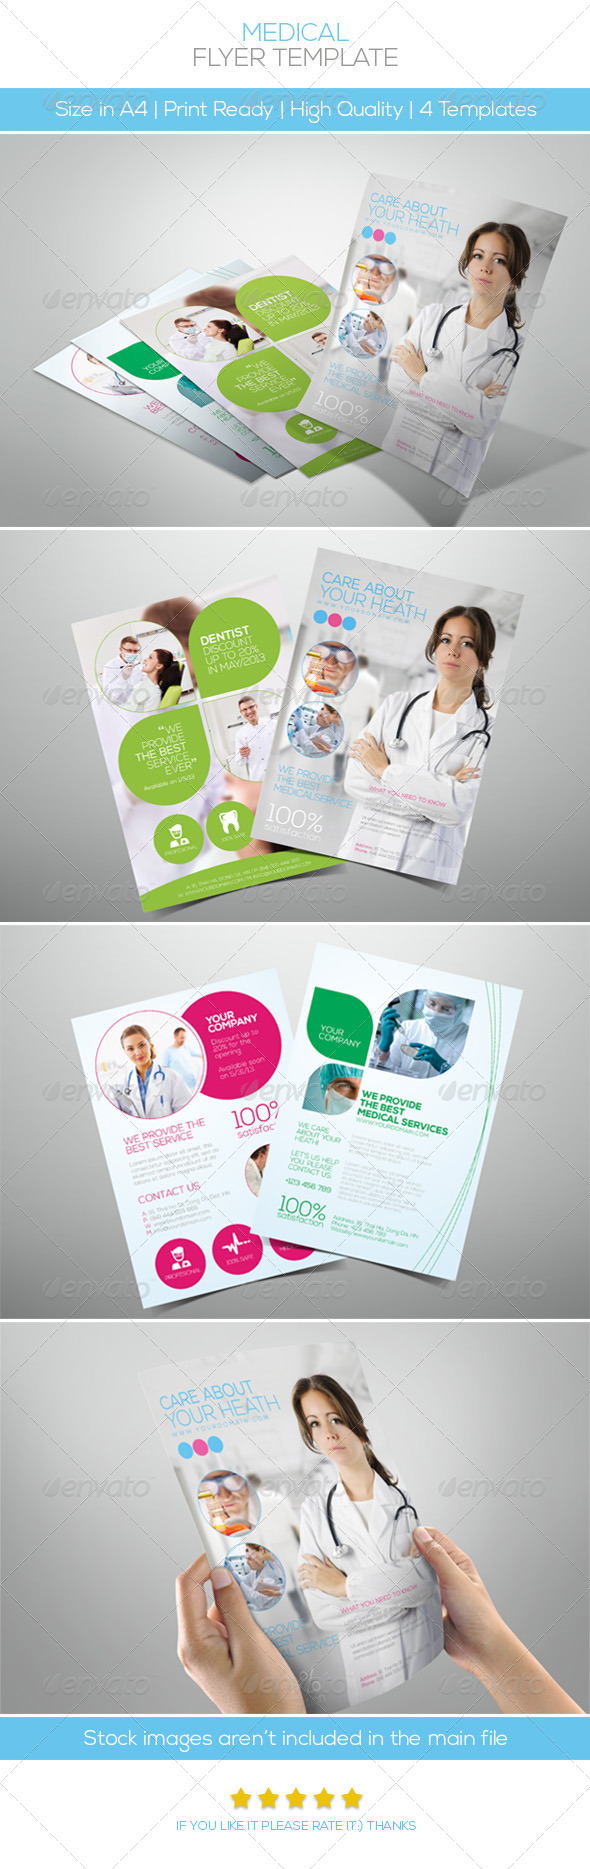 Premium Medical Flyers - Corporate Flyers